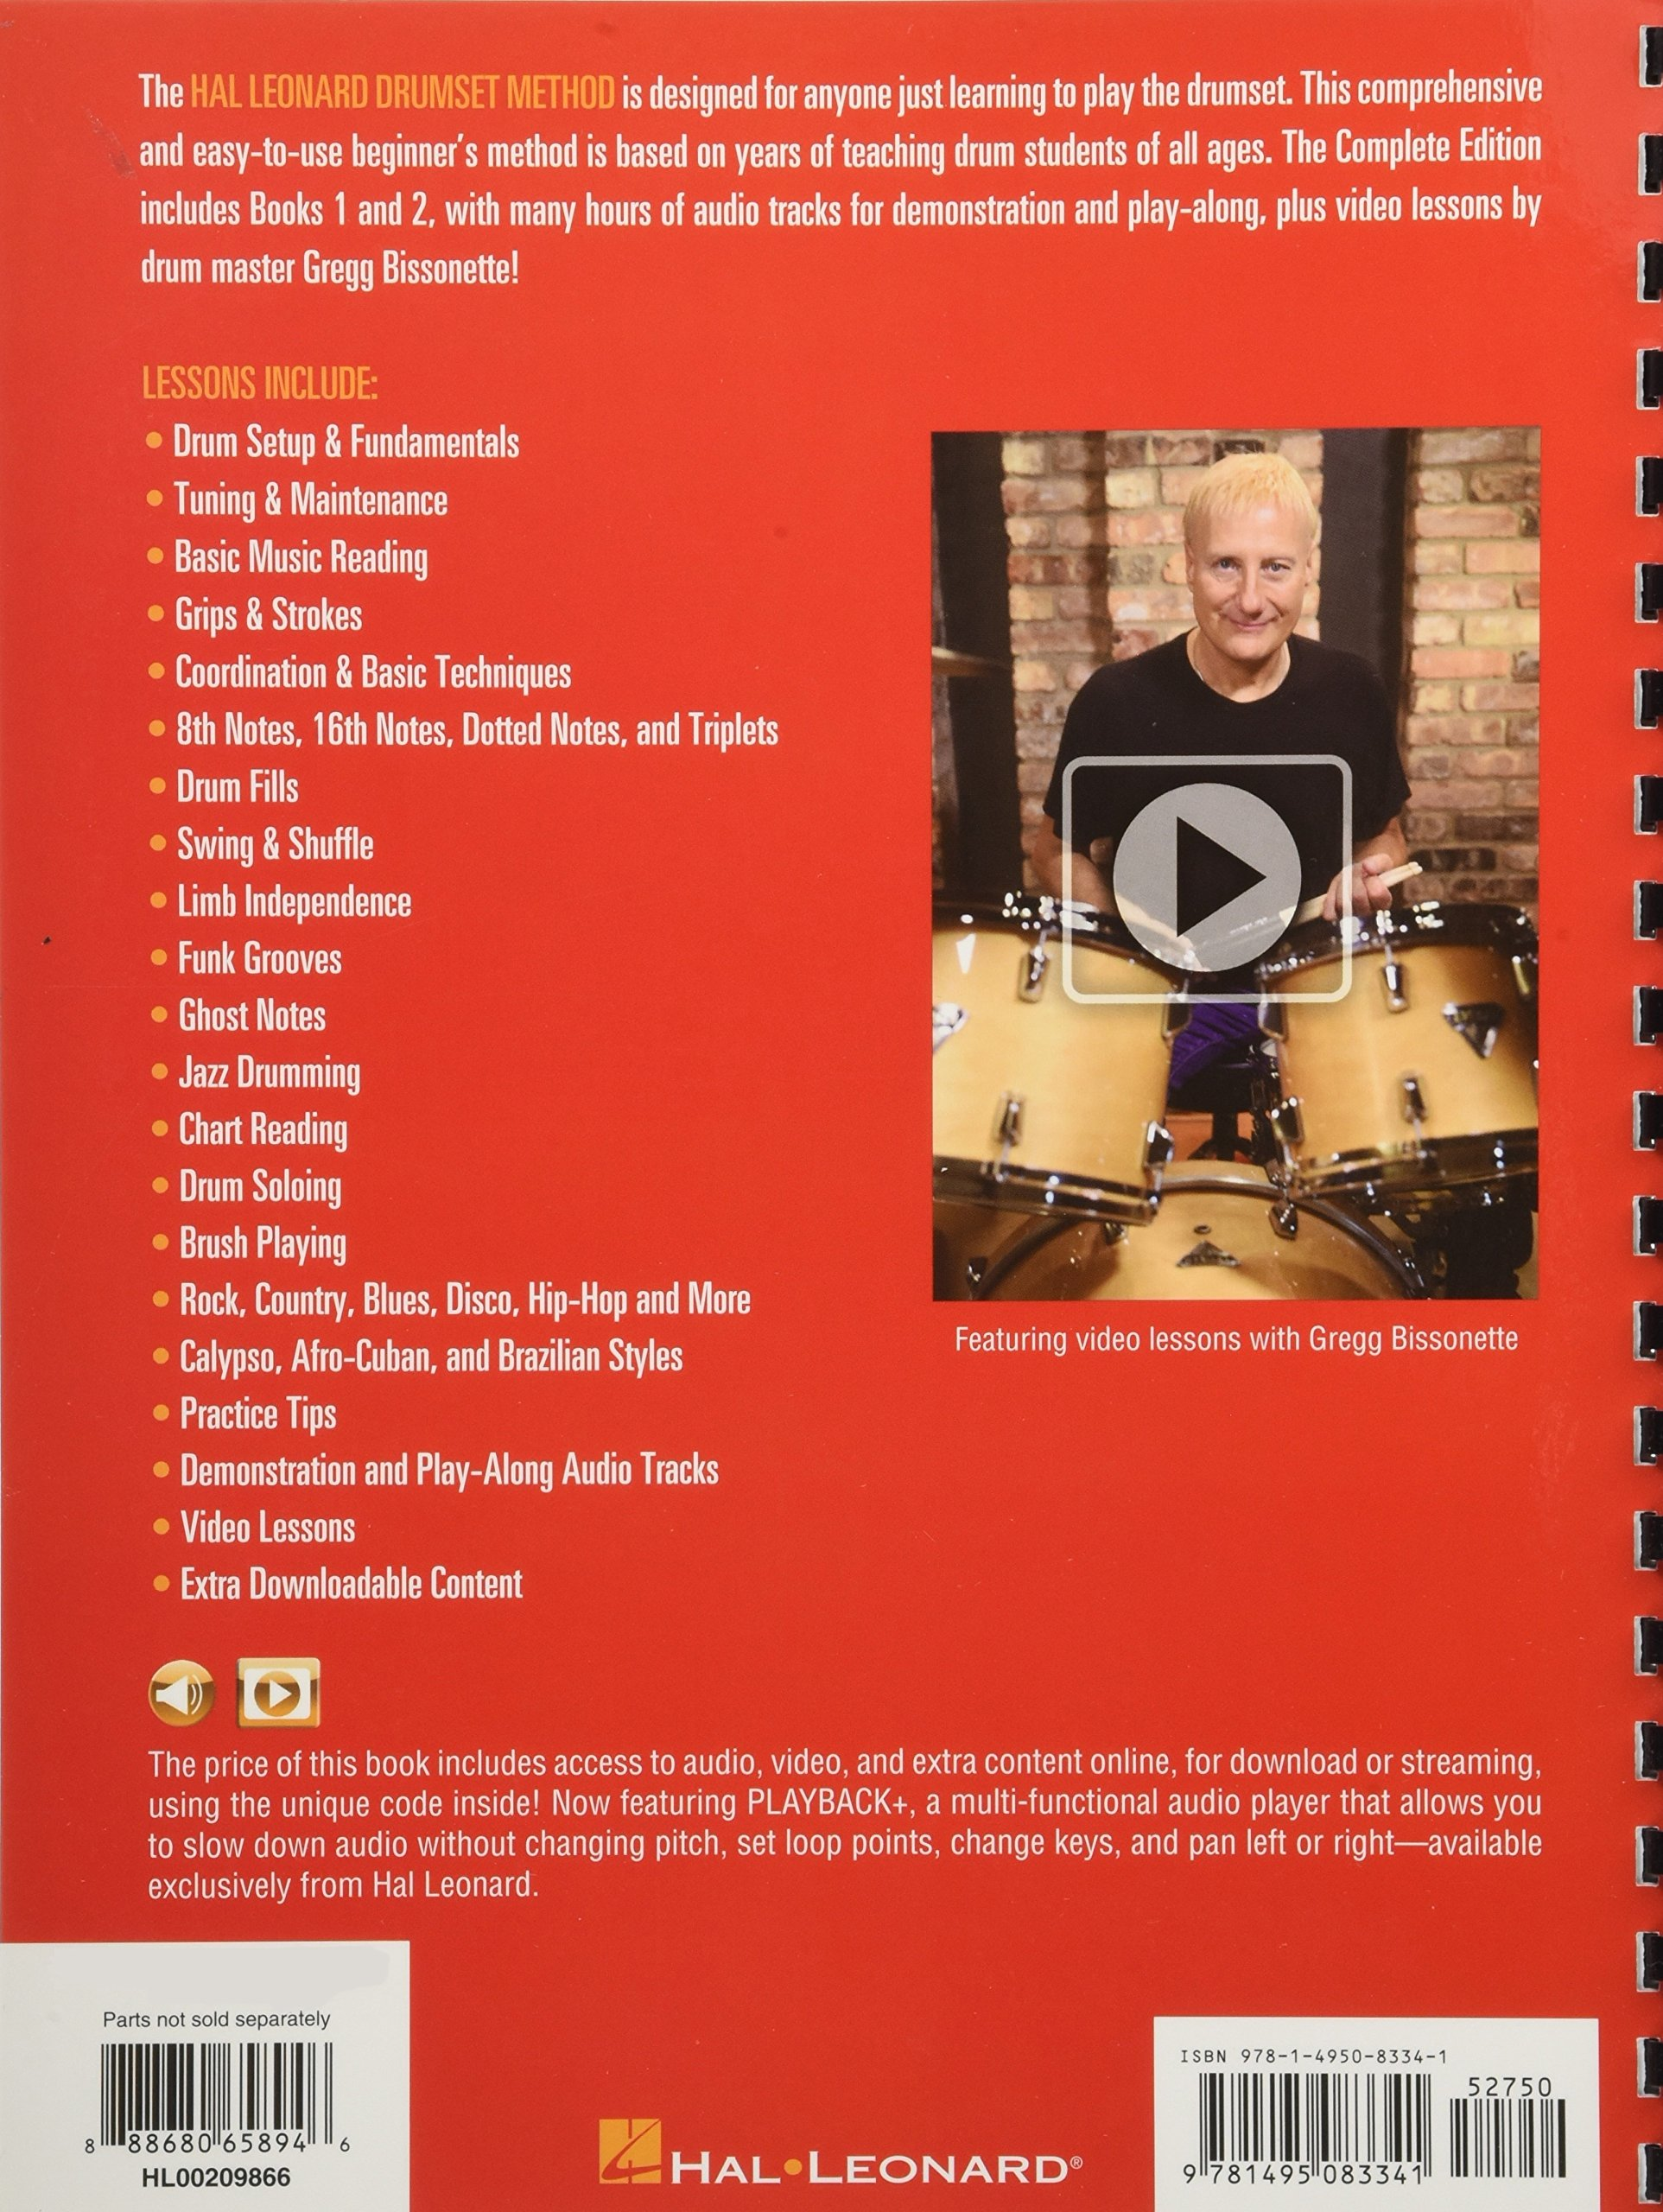 Hal Leonard Drumset Method - Complete Edition: Books 1 & 2 with